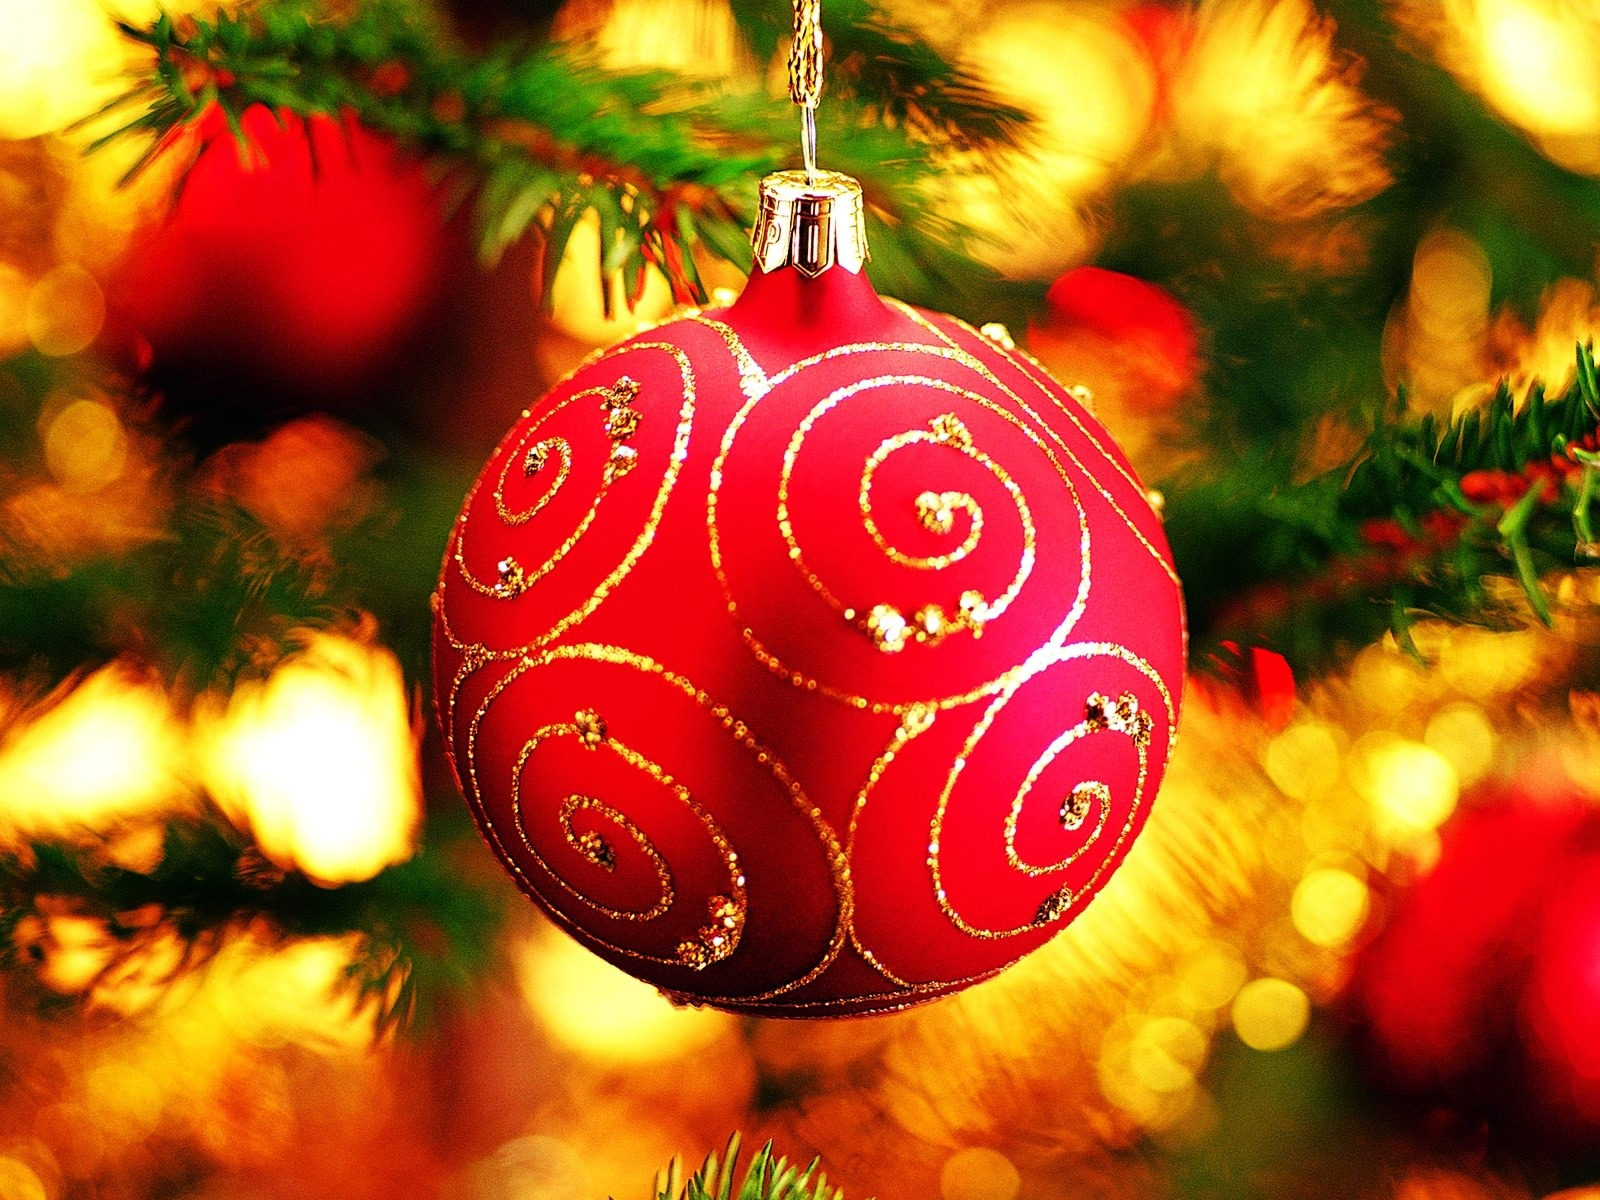 Lovely Christmas Ornament 38758 1600x1200 px